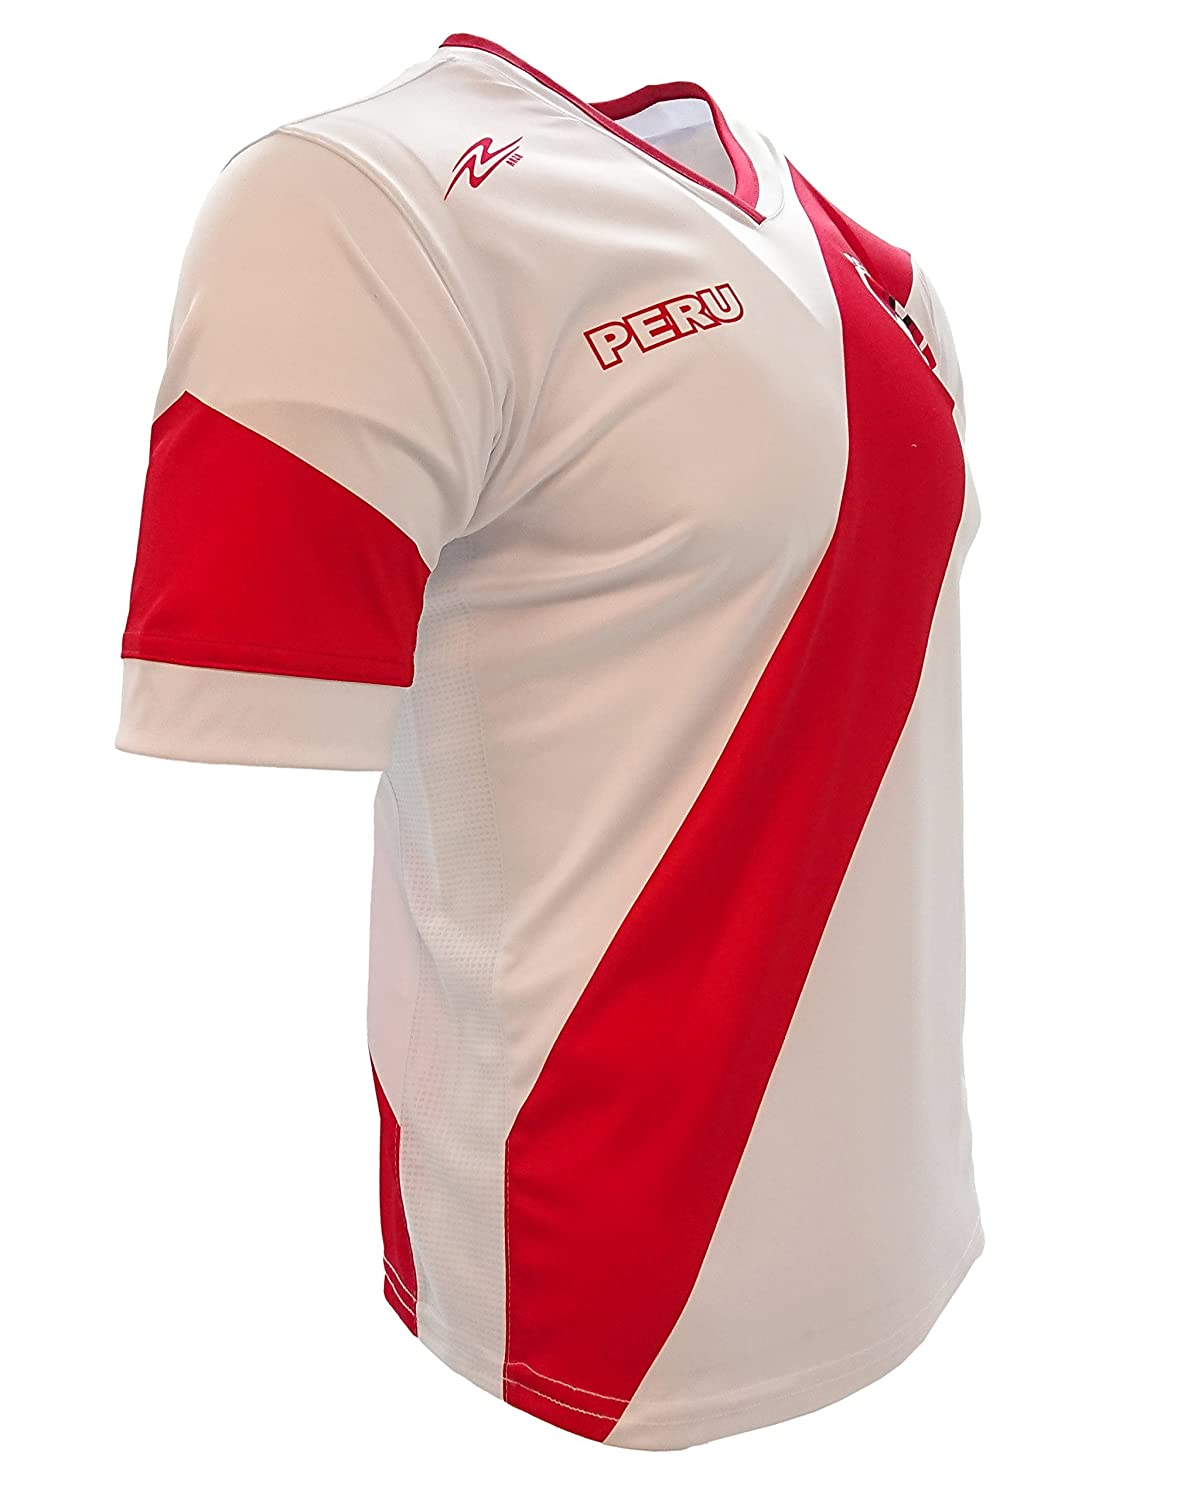 Arza Soccer Peru Jersey White//Red Slim Fit 100/% Polyester